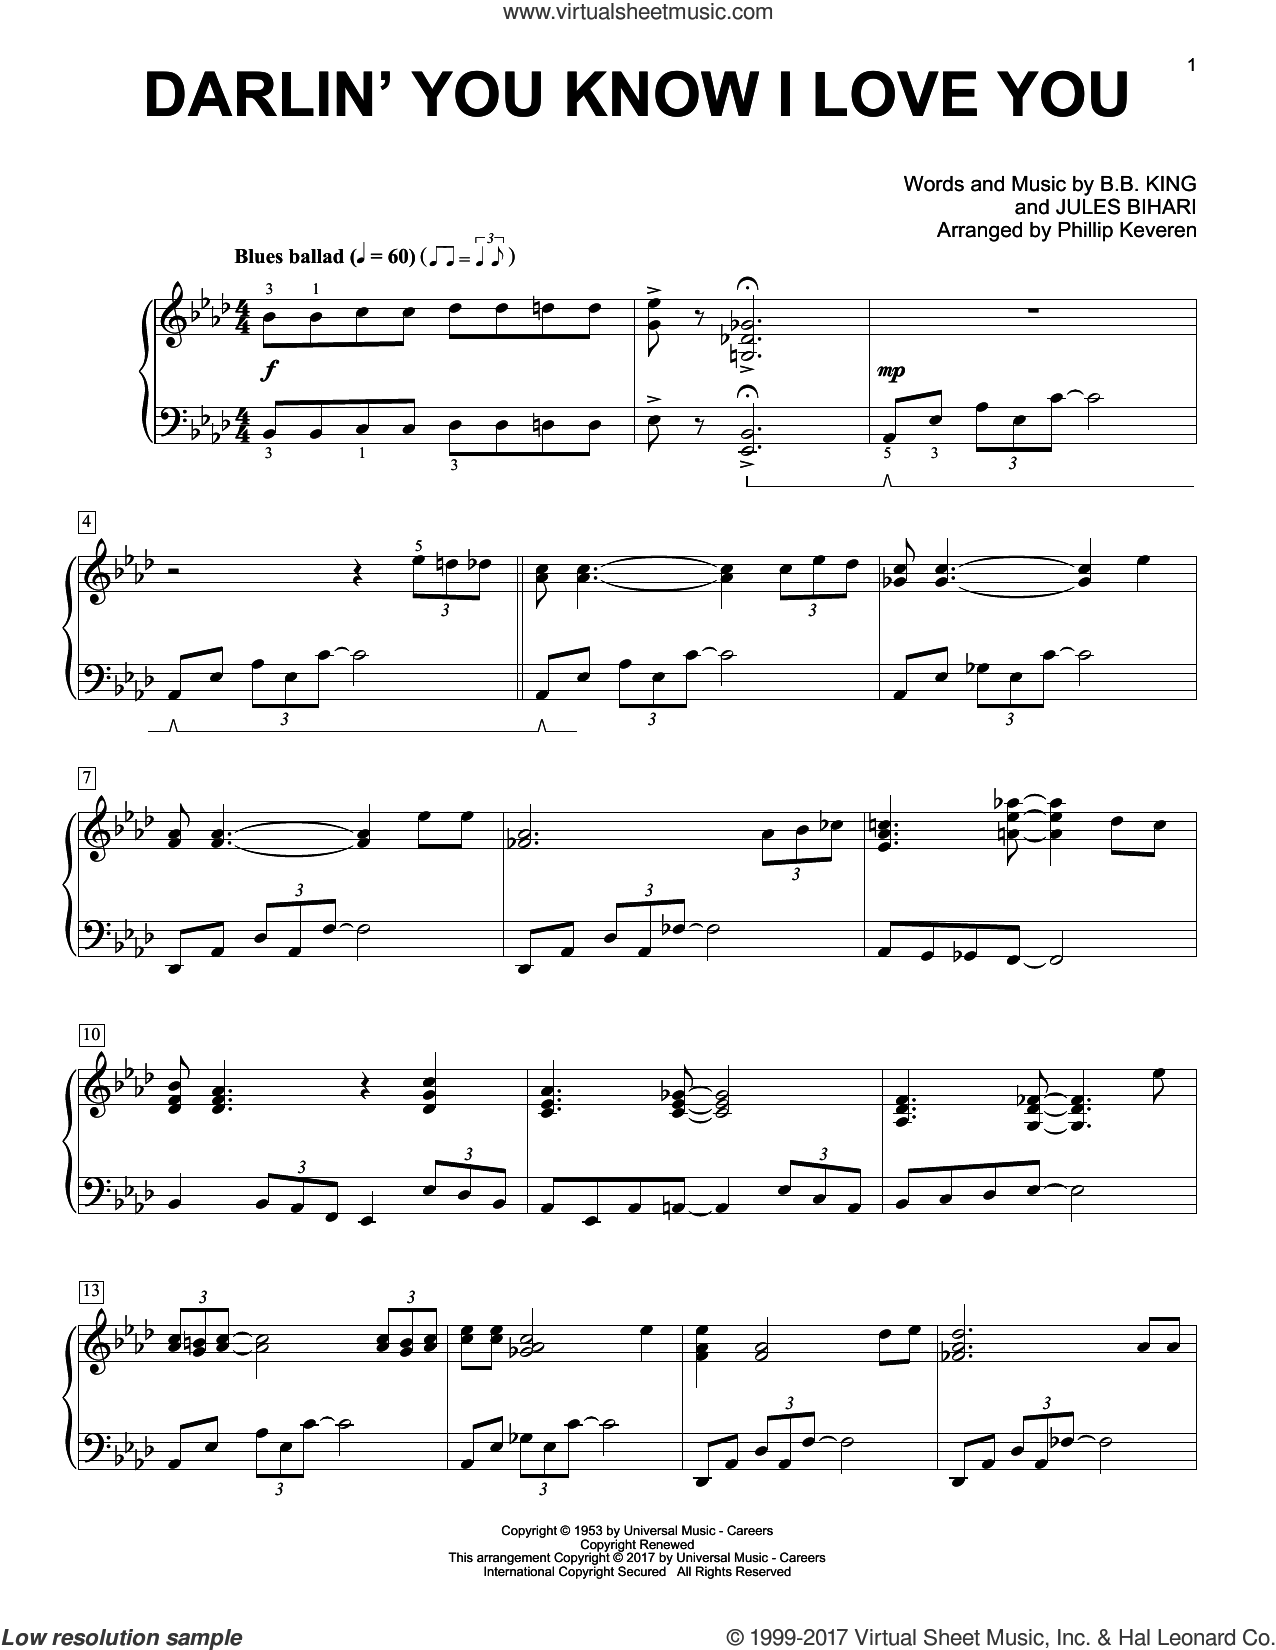 Darlin' You Know I Love You sheet music for piano solo by B.B. King and Phillip Keveren, intermediate piano. Score Image Preview.